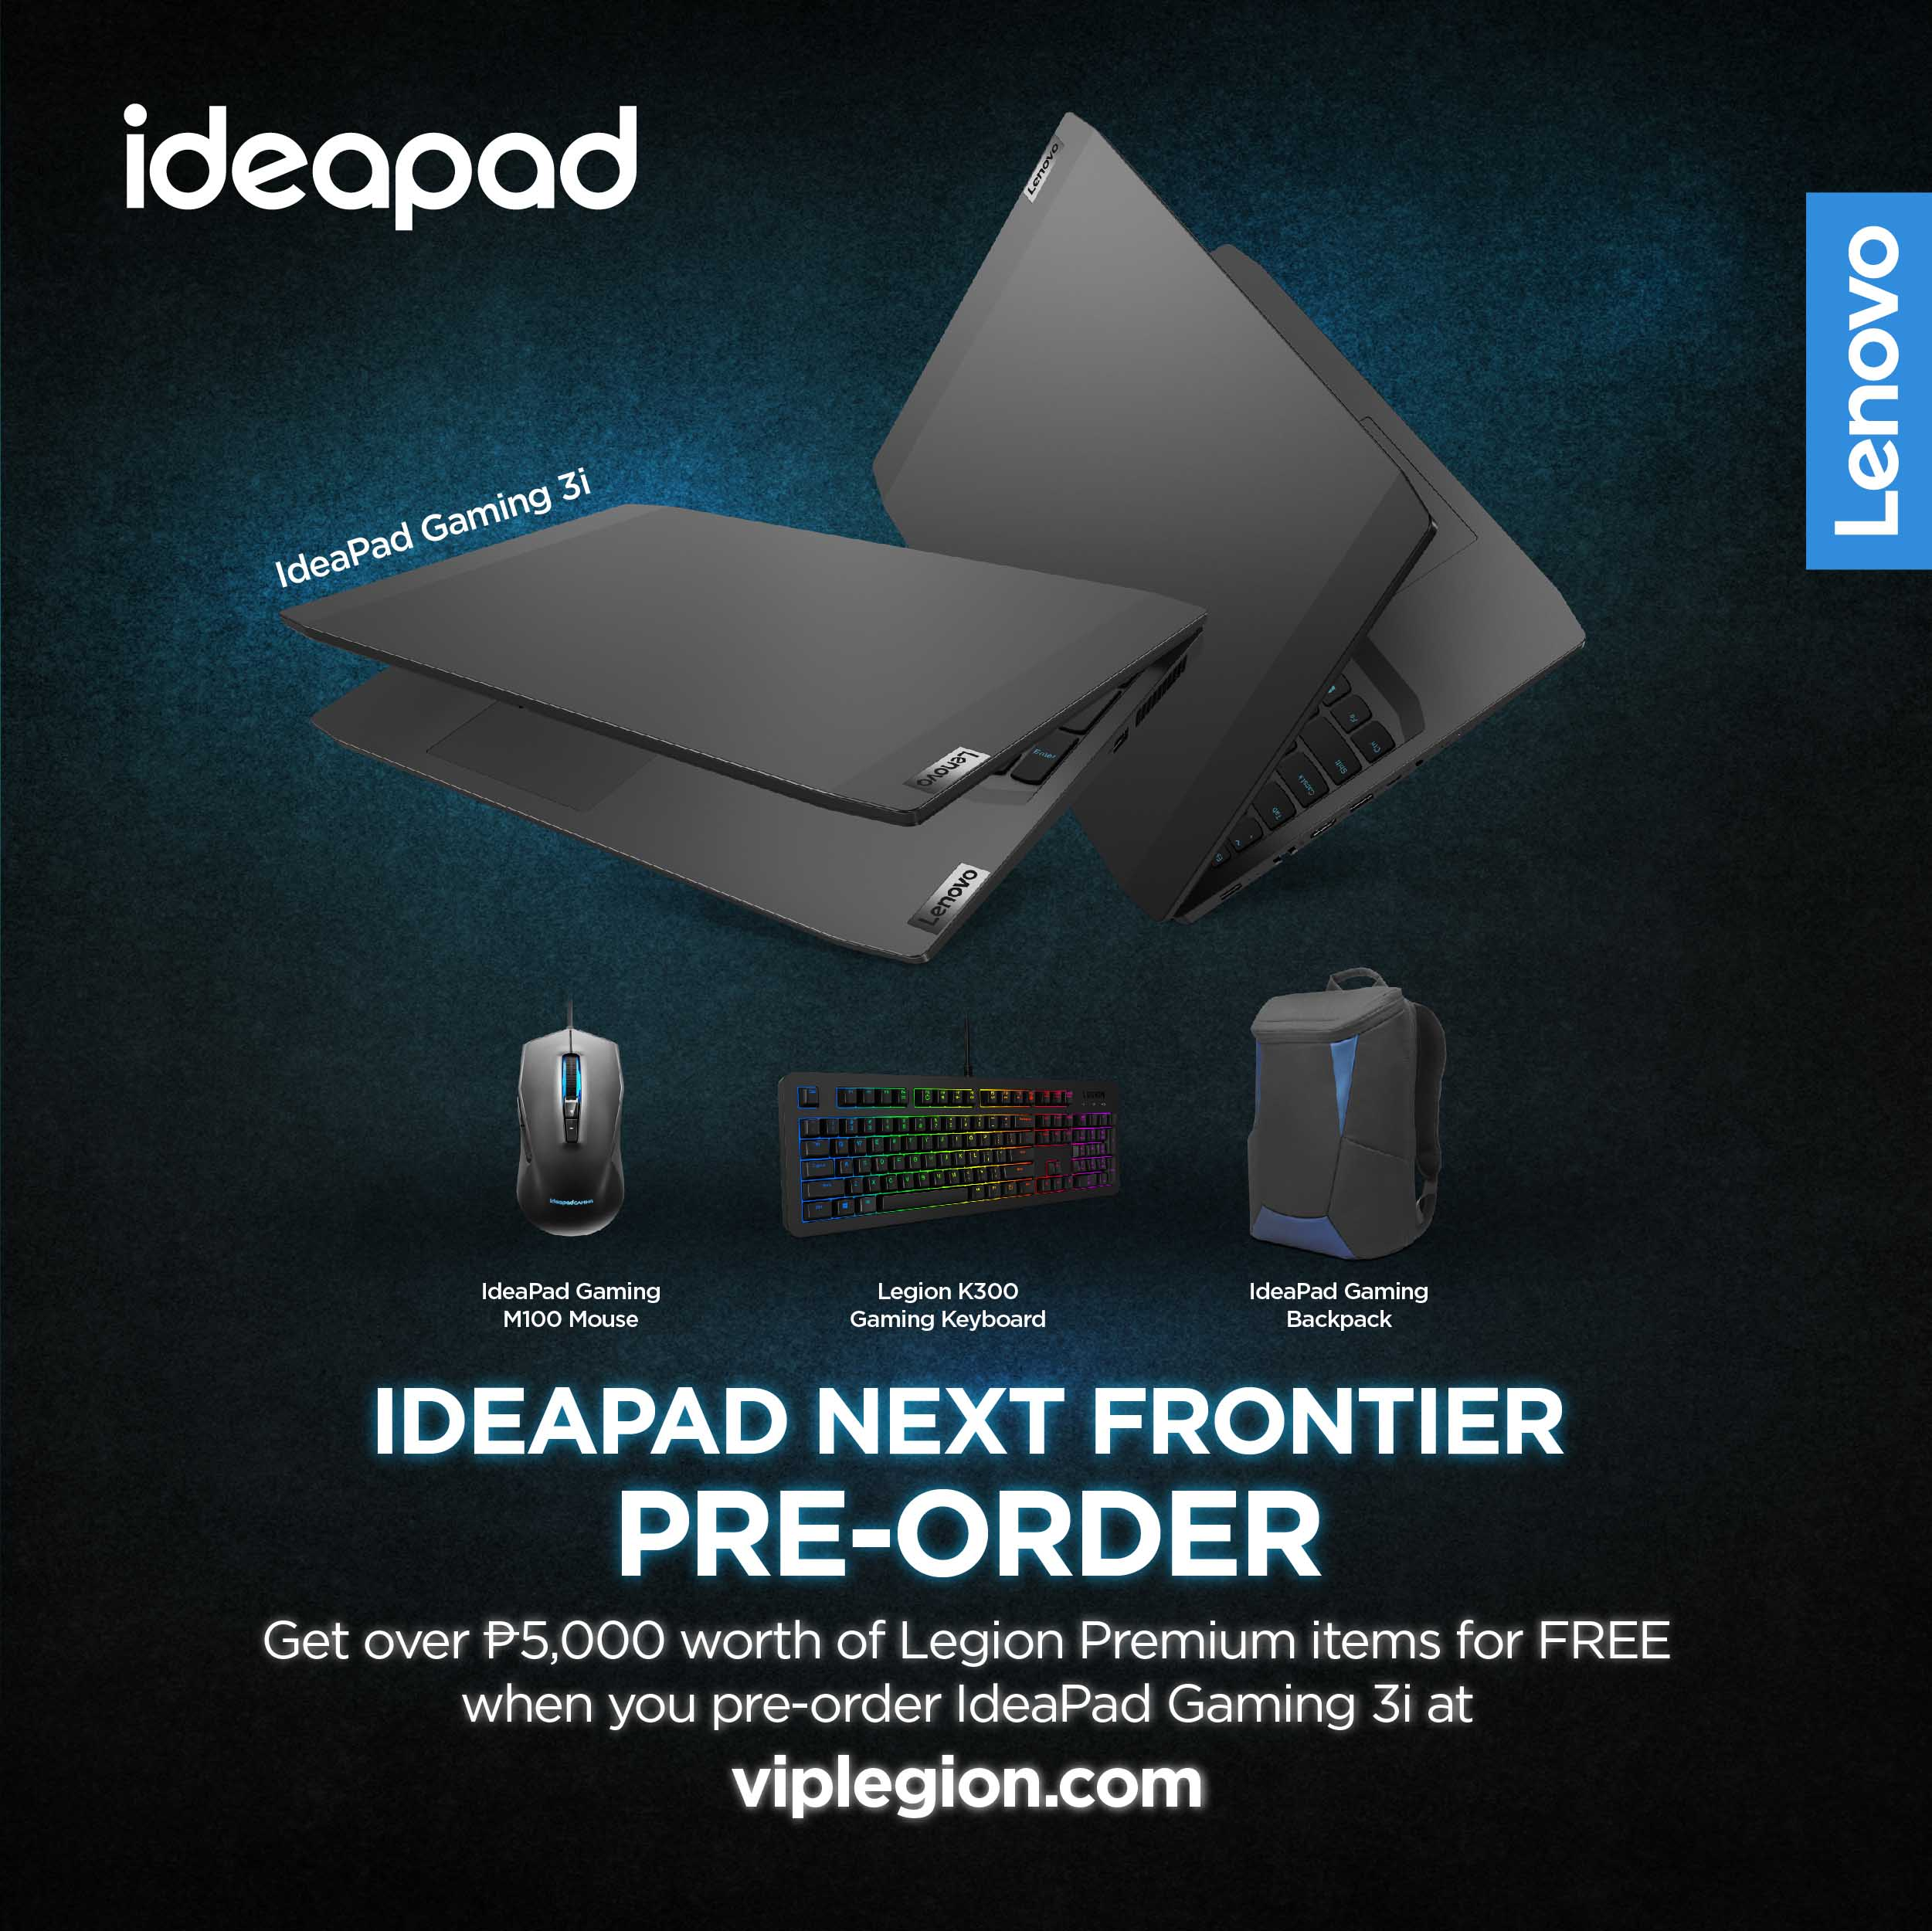 lenovo-legion-gaming-laptops-and-tower-pre-order-details-image-2